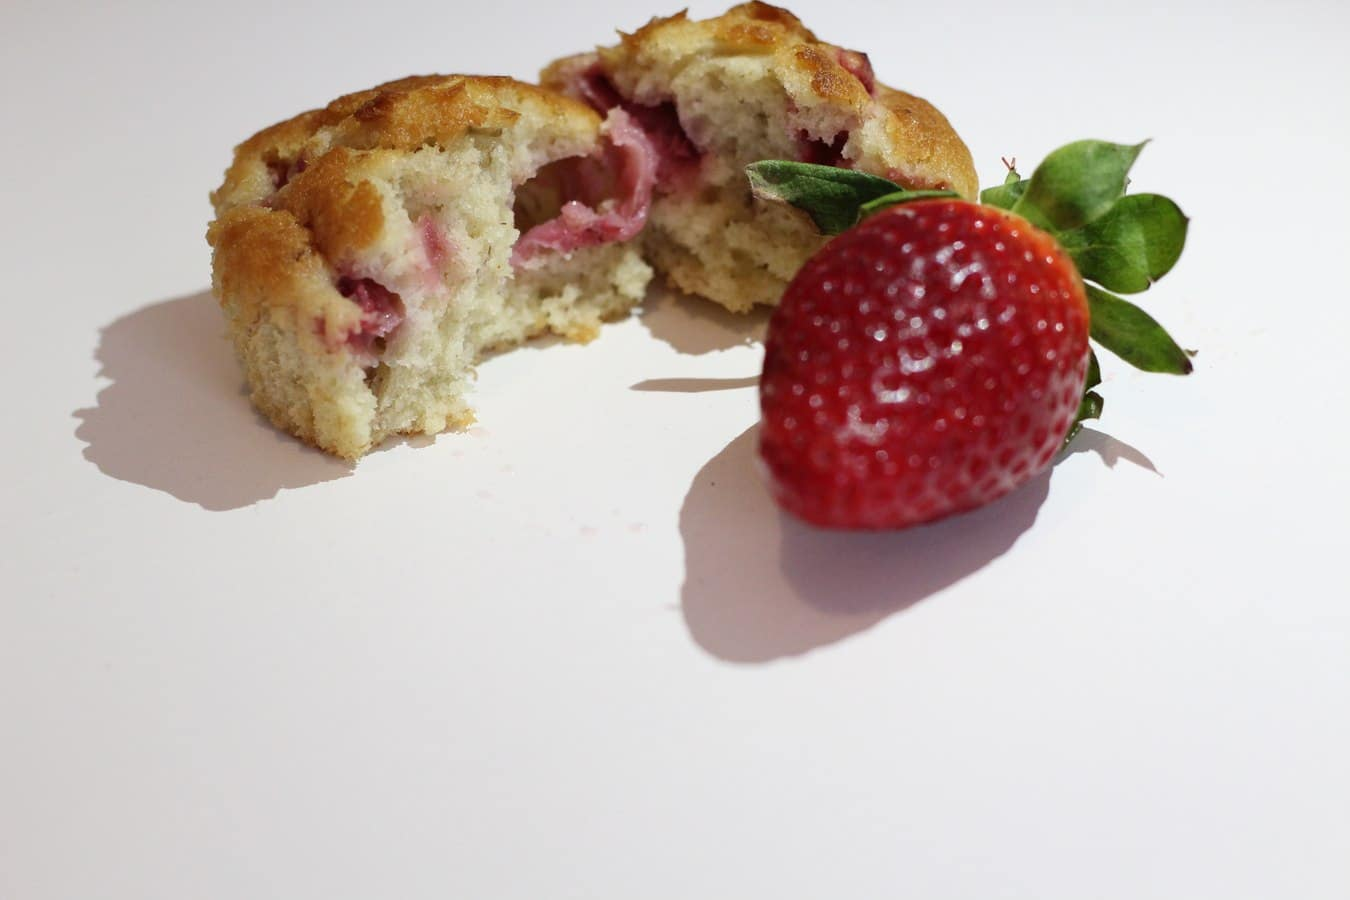 Banana and Strawberry Breakfast Muffins